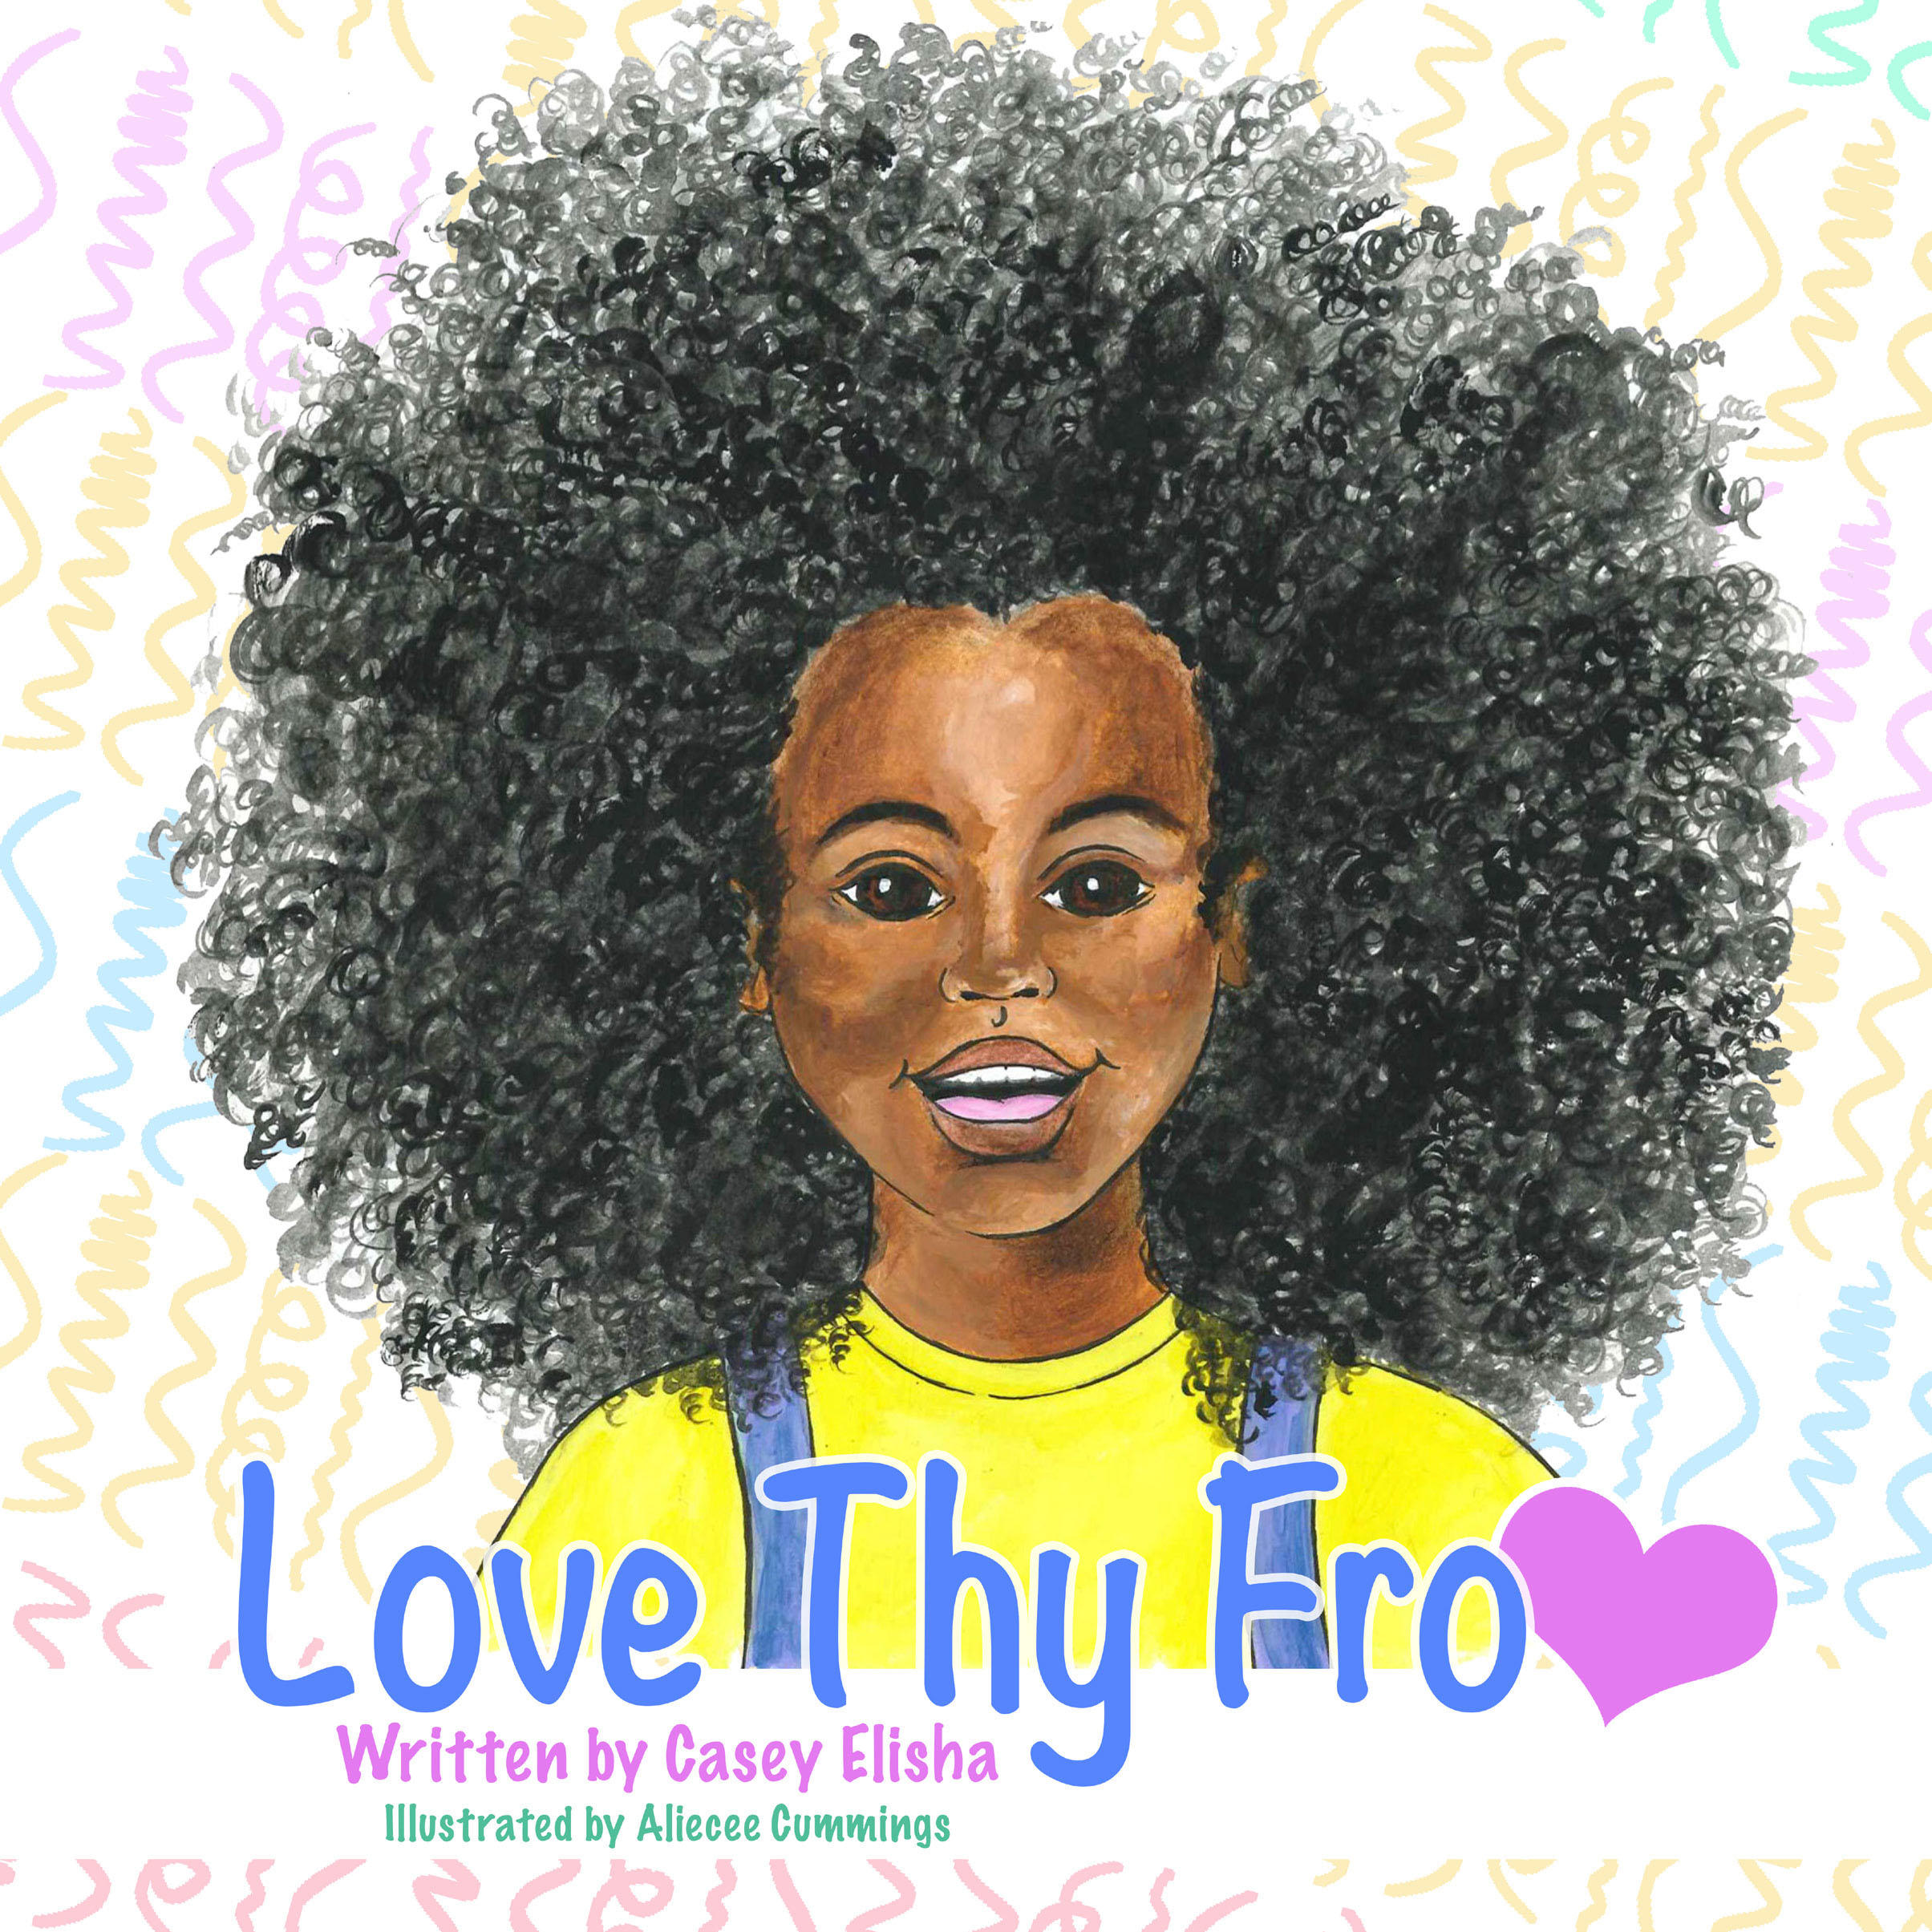 Black girl with afro hair on a book cover